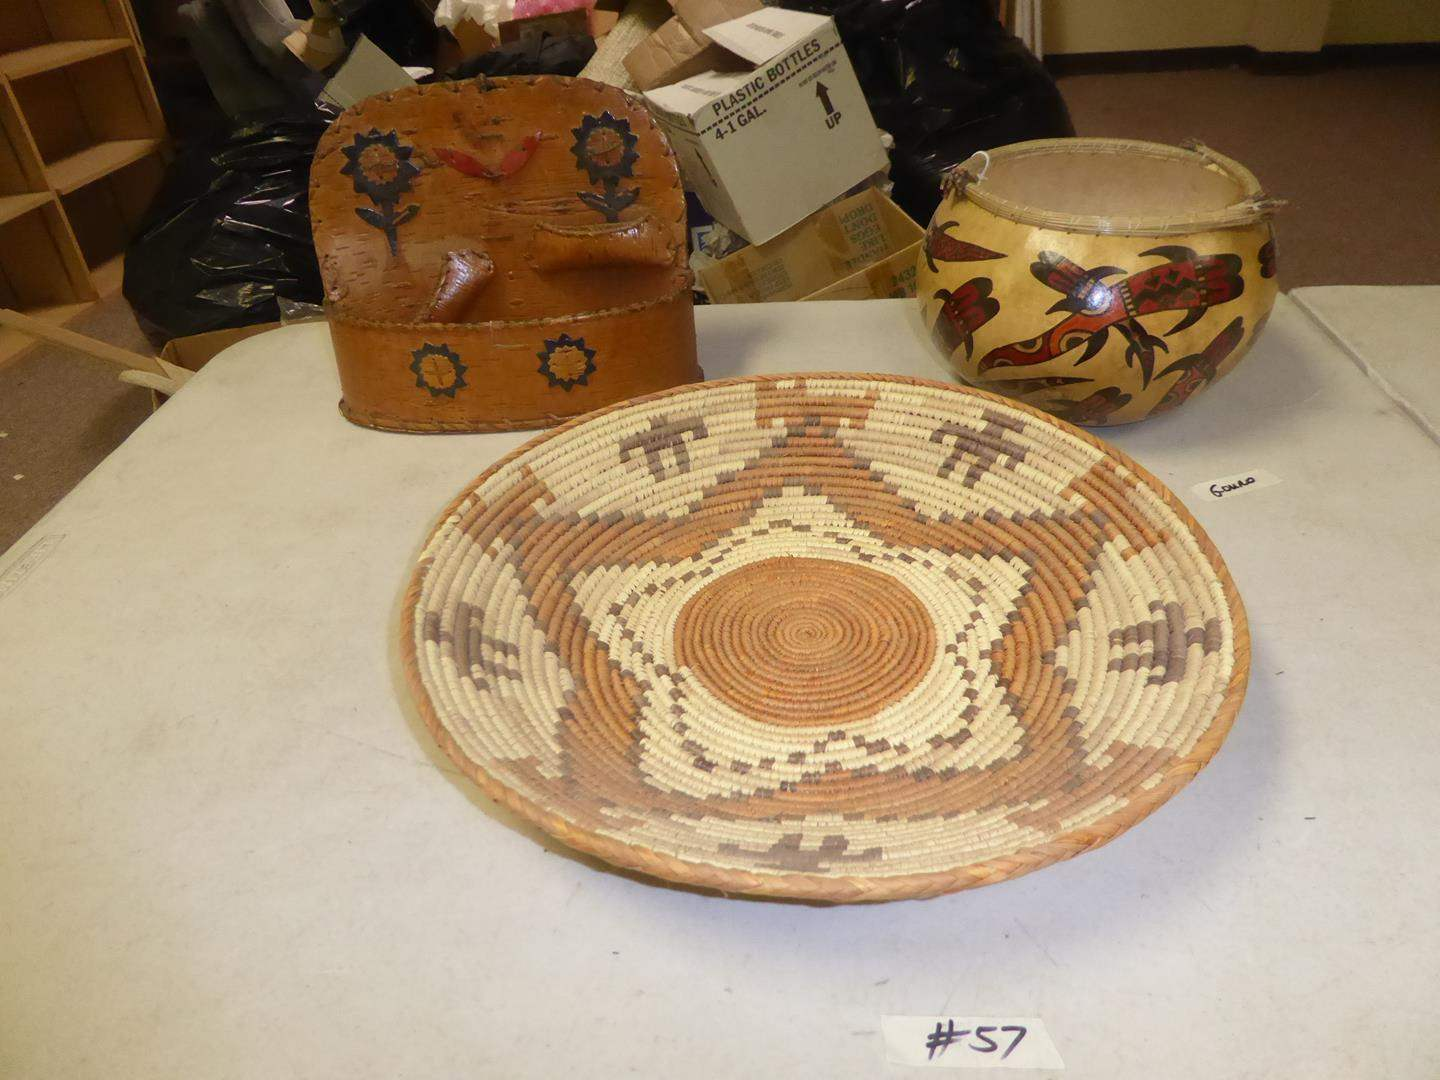 Lot # 57 - Vintage Native African Basket Tray, Birch Wood Basket & Signed Hand Painted Gourd (main image)